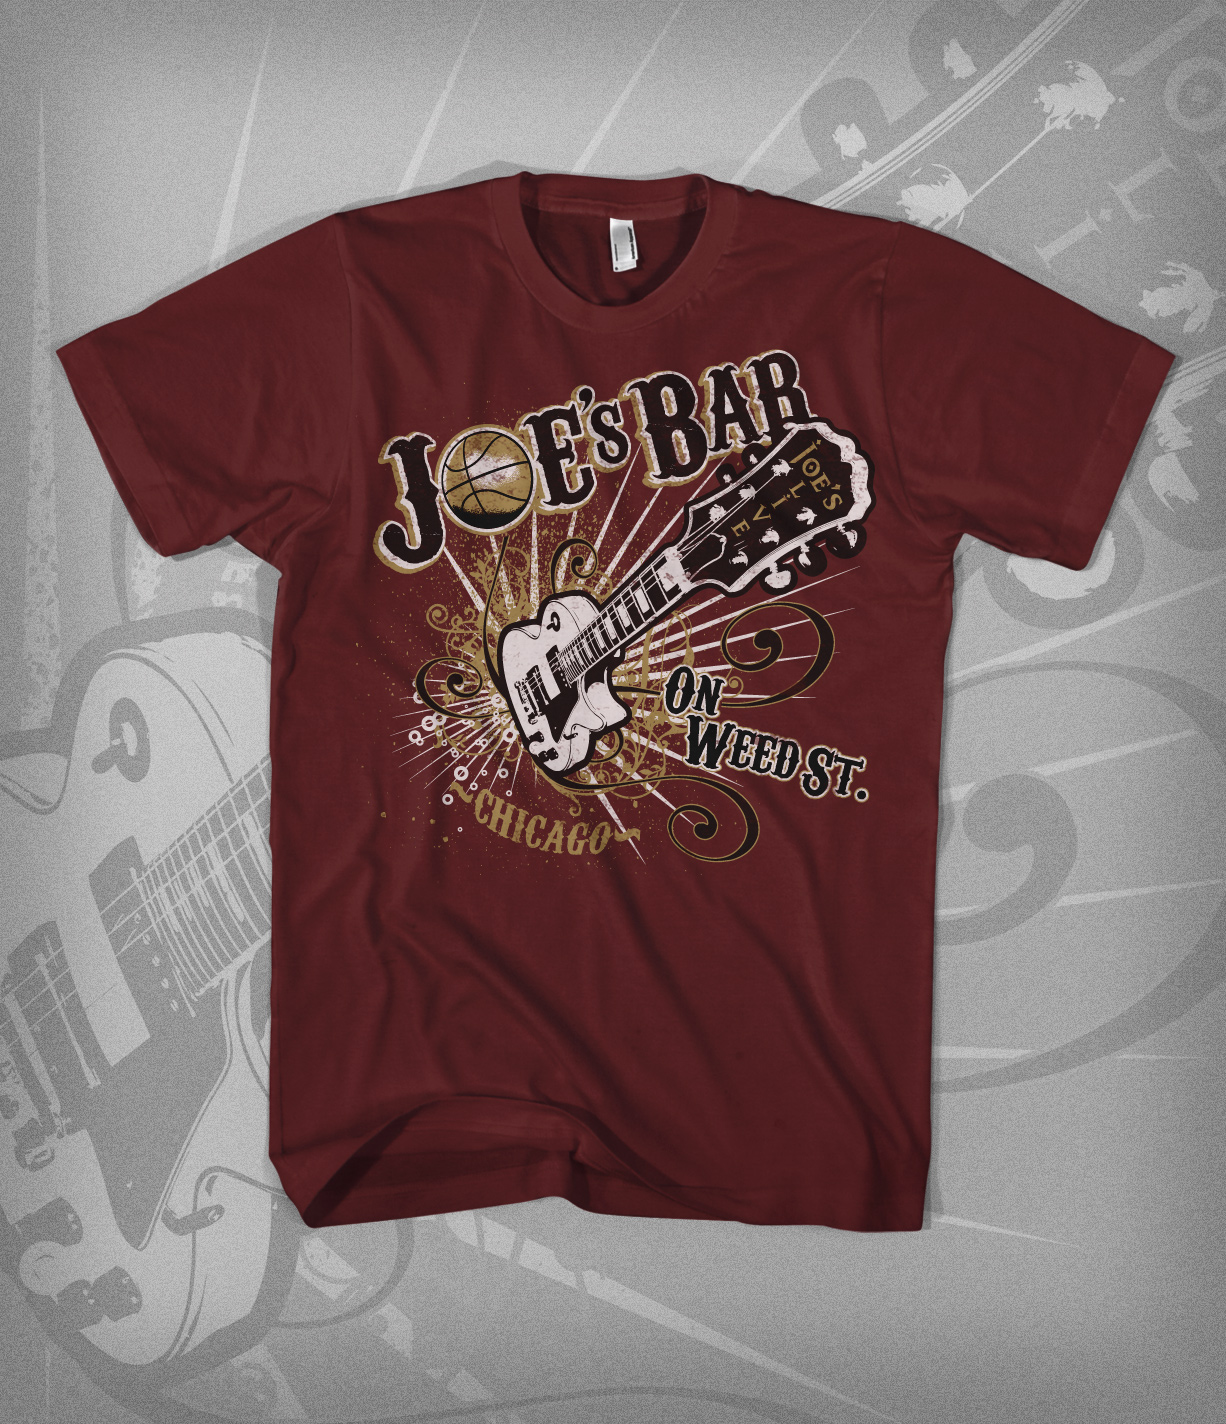 Joe's Bar - Tee design - red